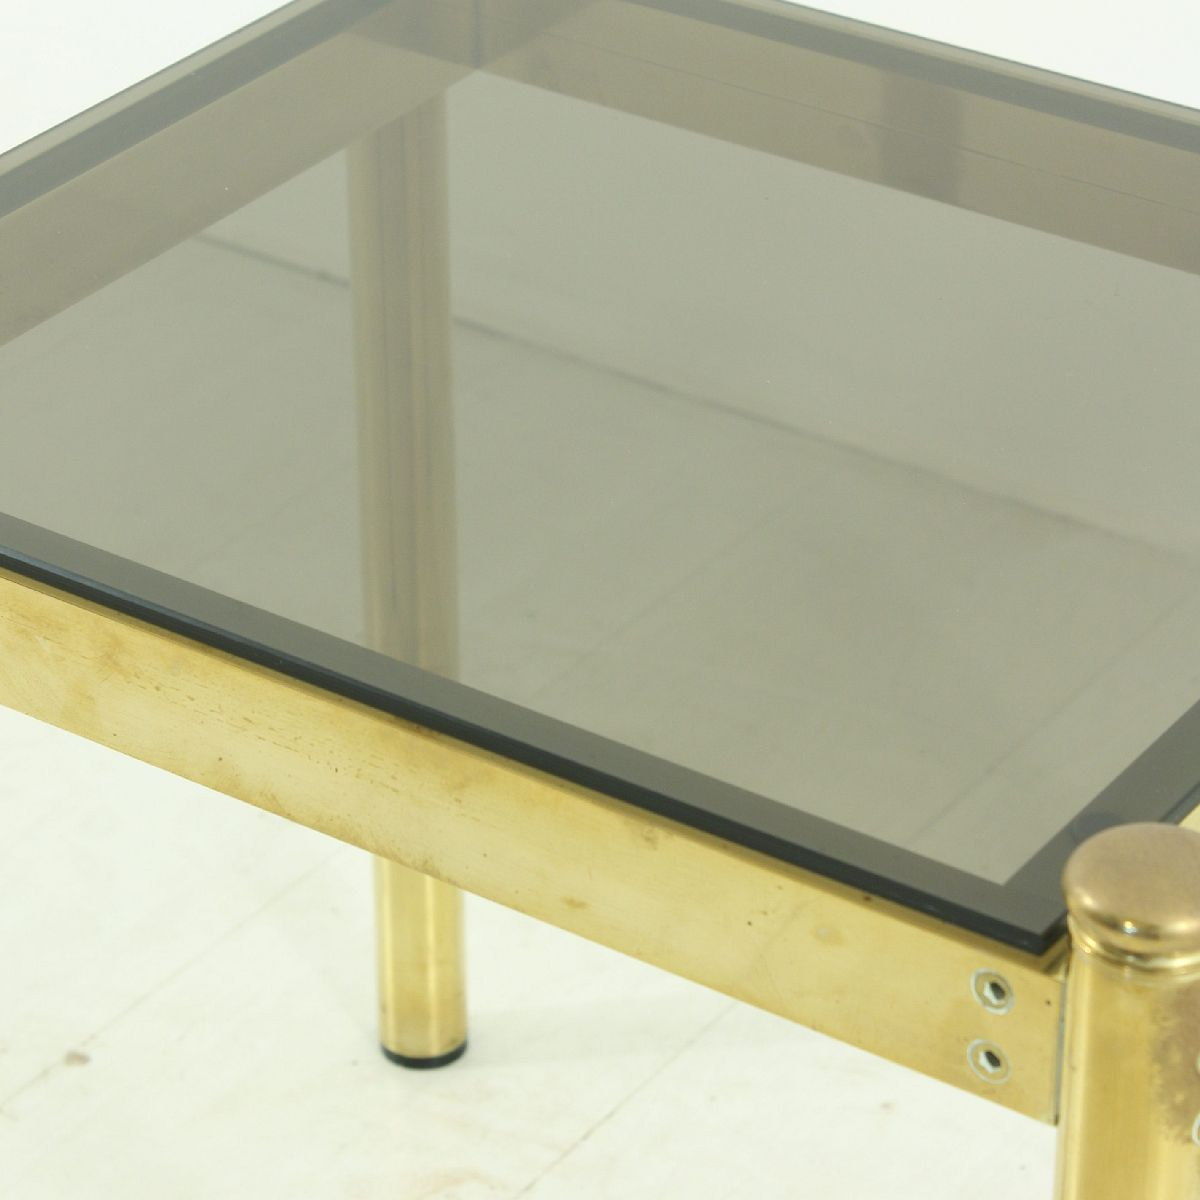 Vintage Brass Coffee Table With Smoked Glass Top 5. Price: $523.00 Regular  Price: $565.00